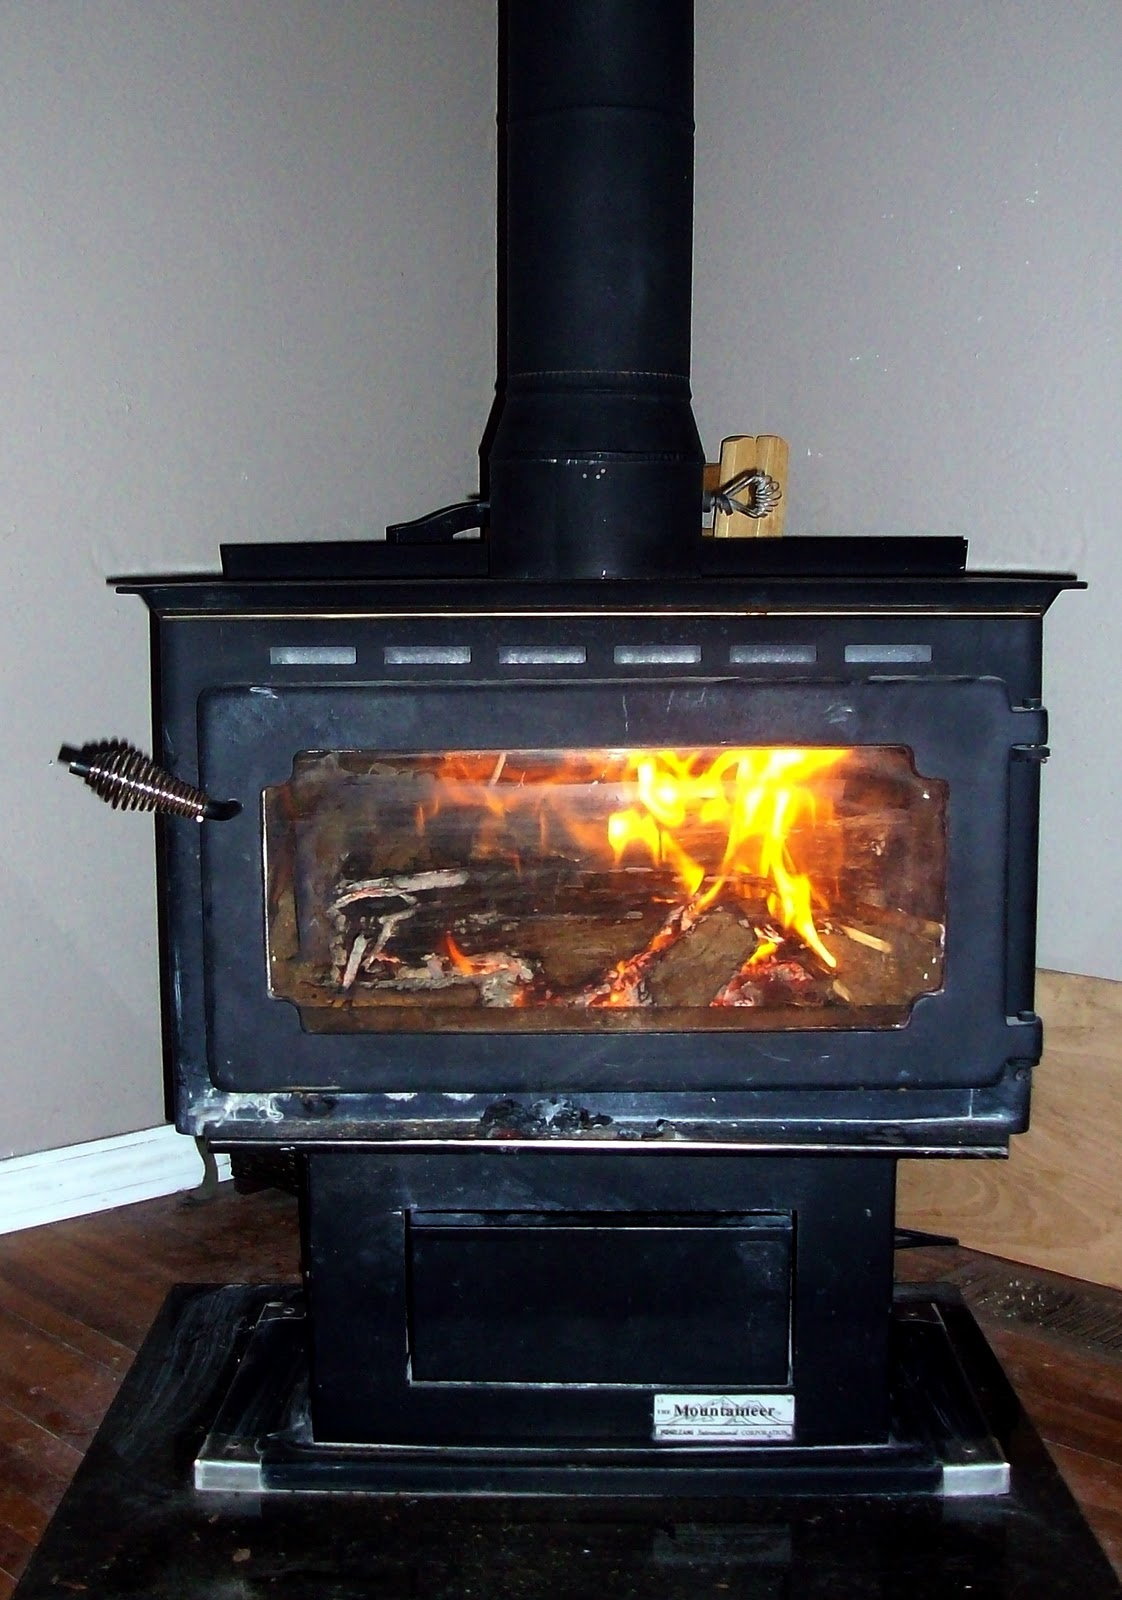 Homestead roots firewood preparing for winter and the Wood burning stoves